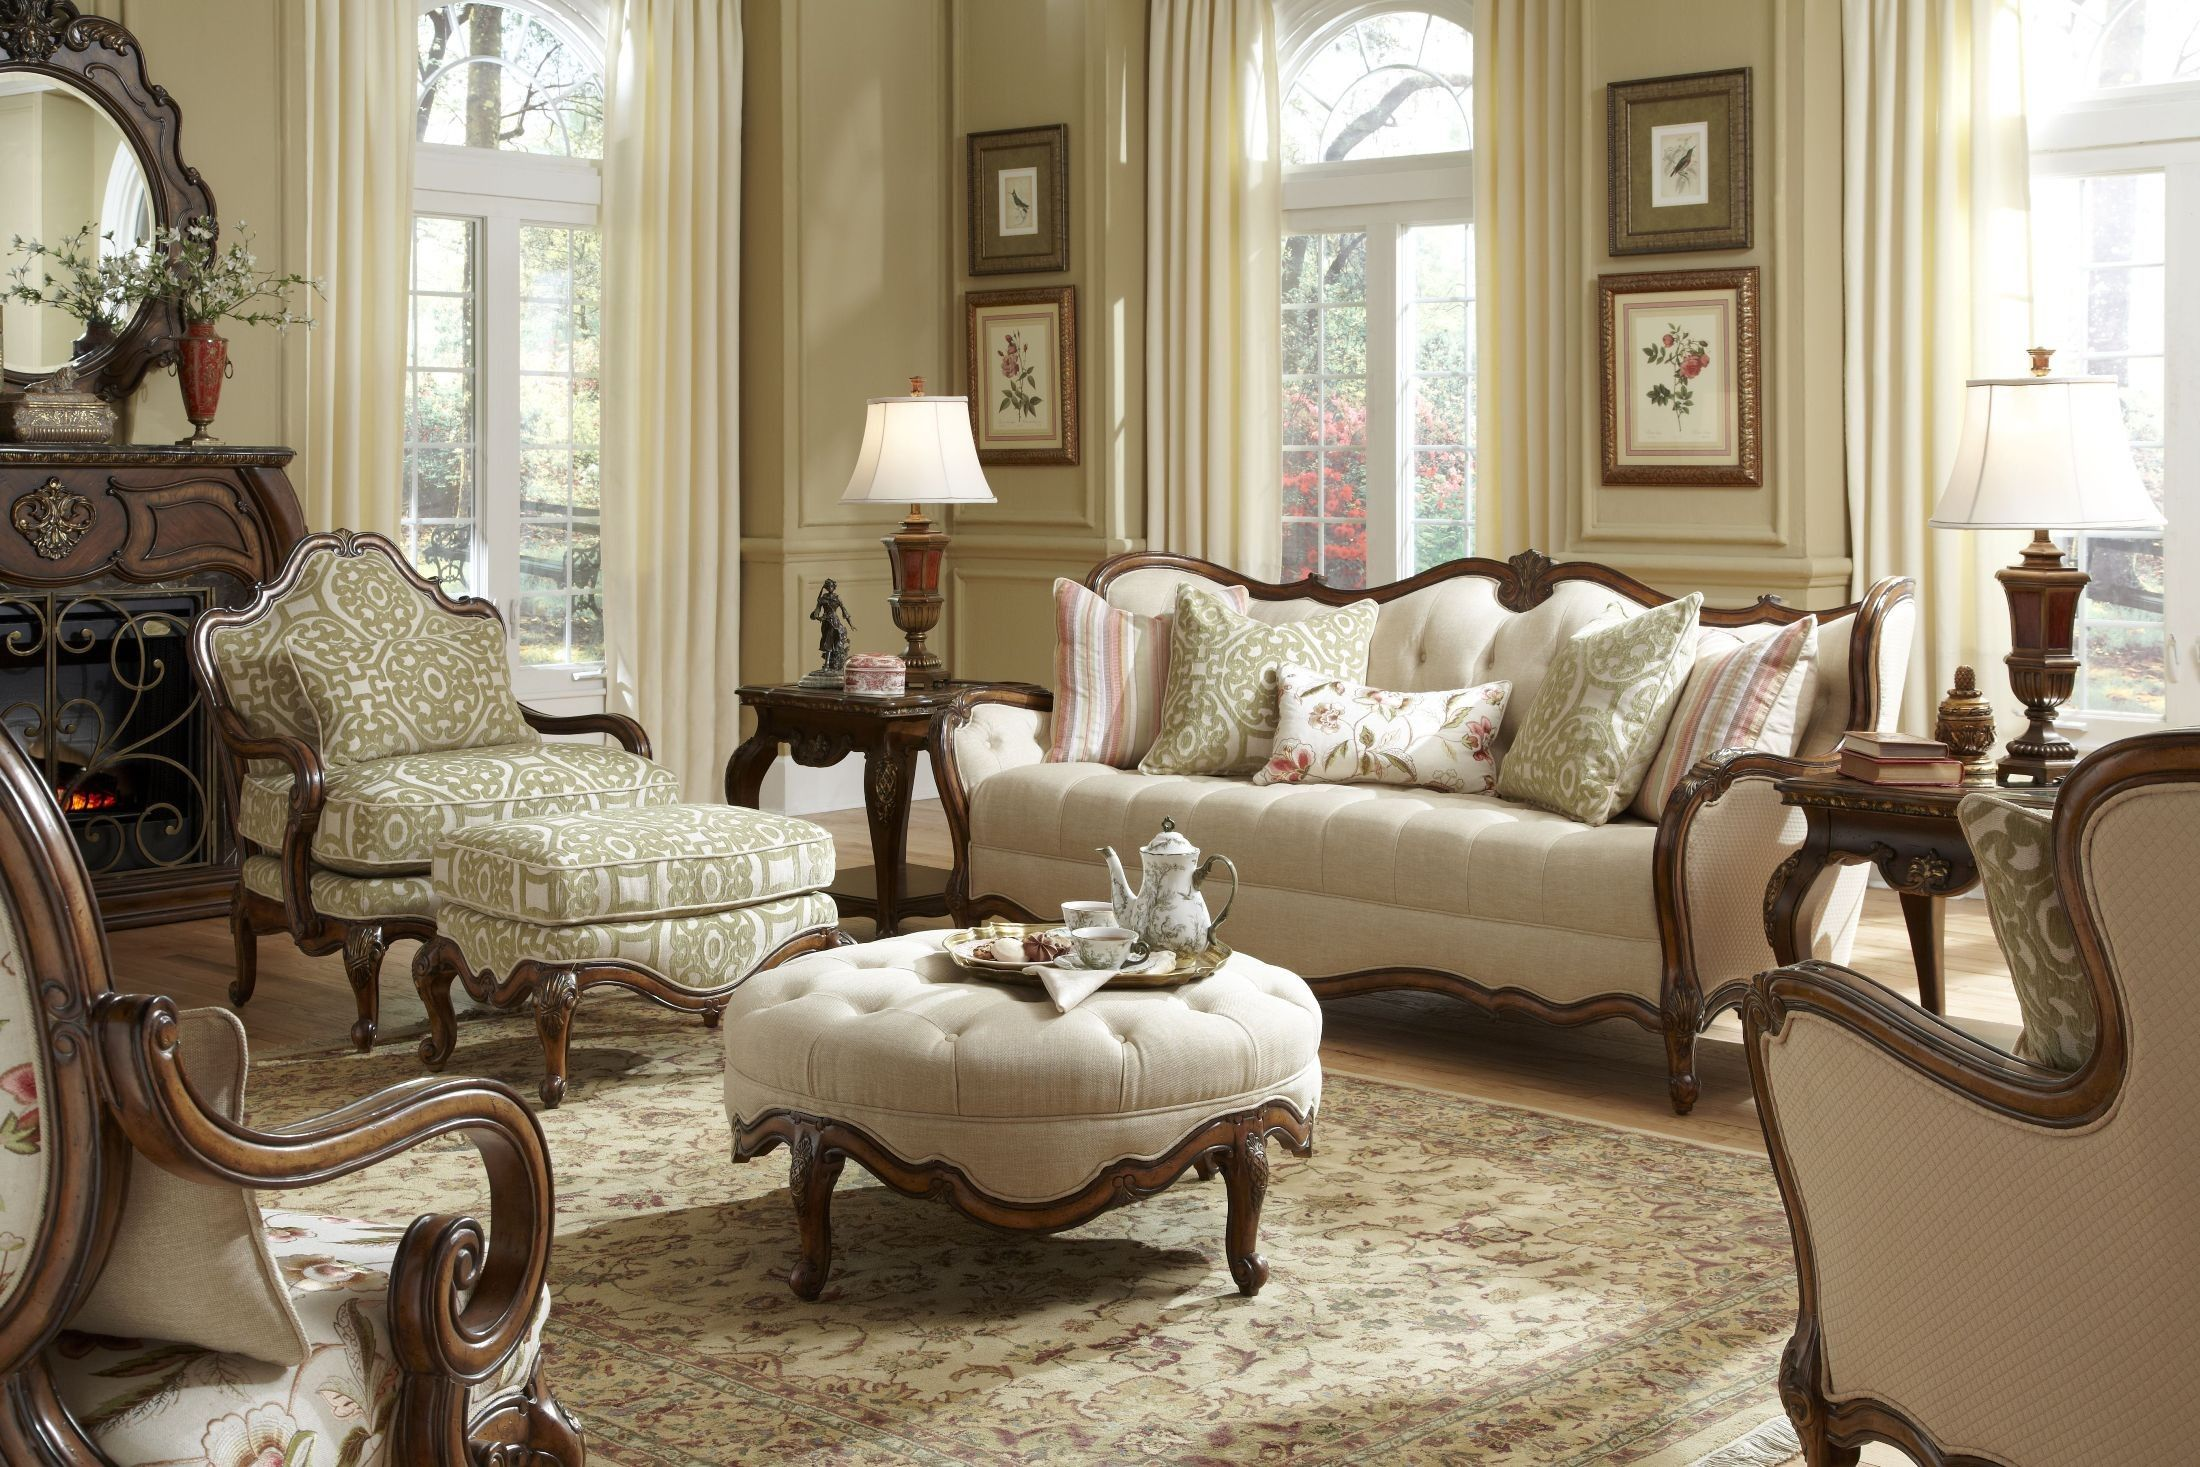 Ashley Furniture in 2019 | Living Room | Victorian home decor ...